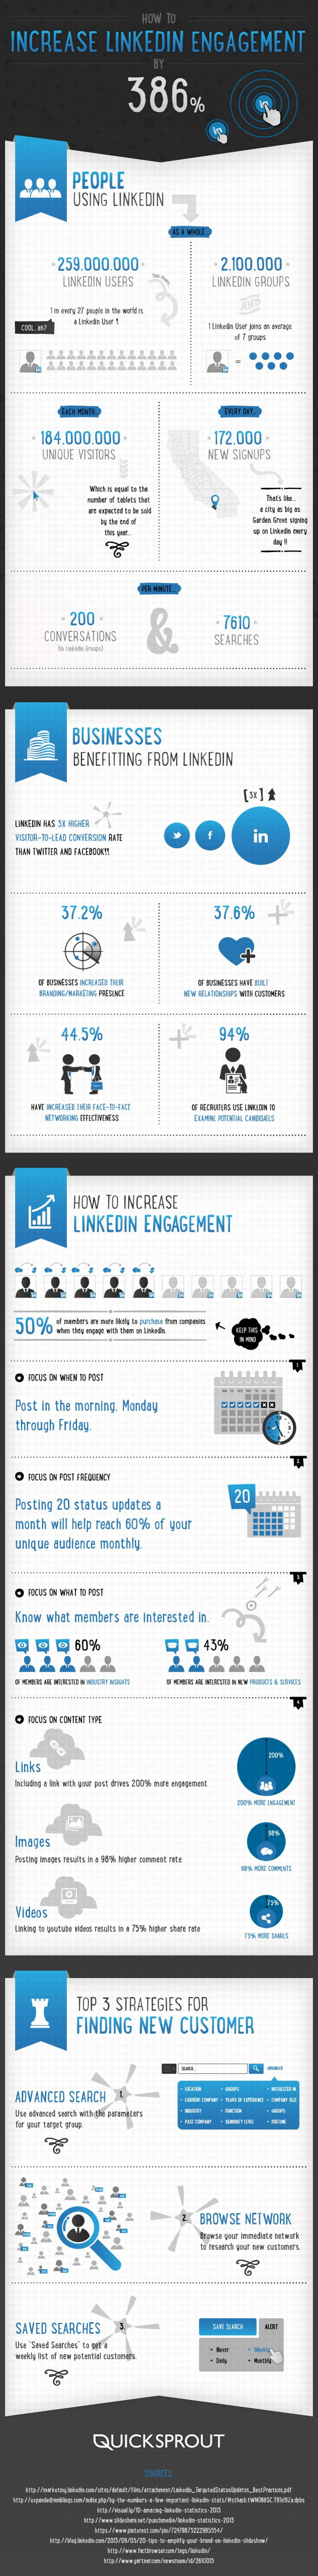 How To Increase LinkedIn Engagement [INFOGRAPHIC]